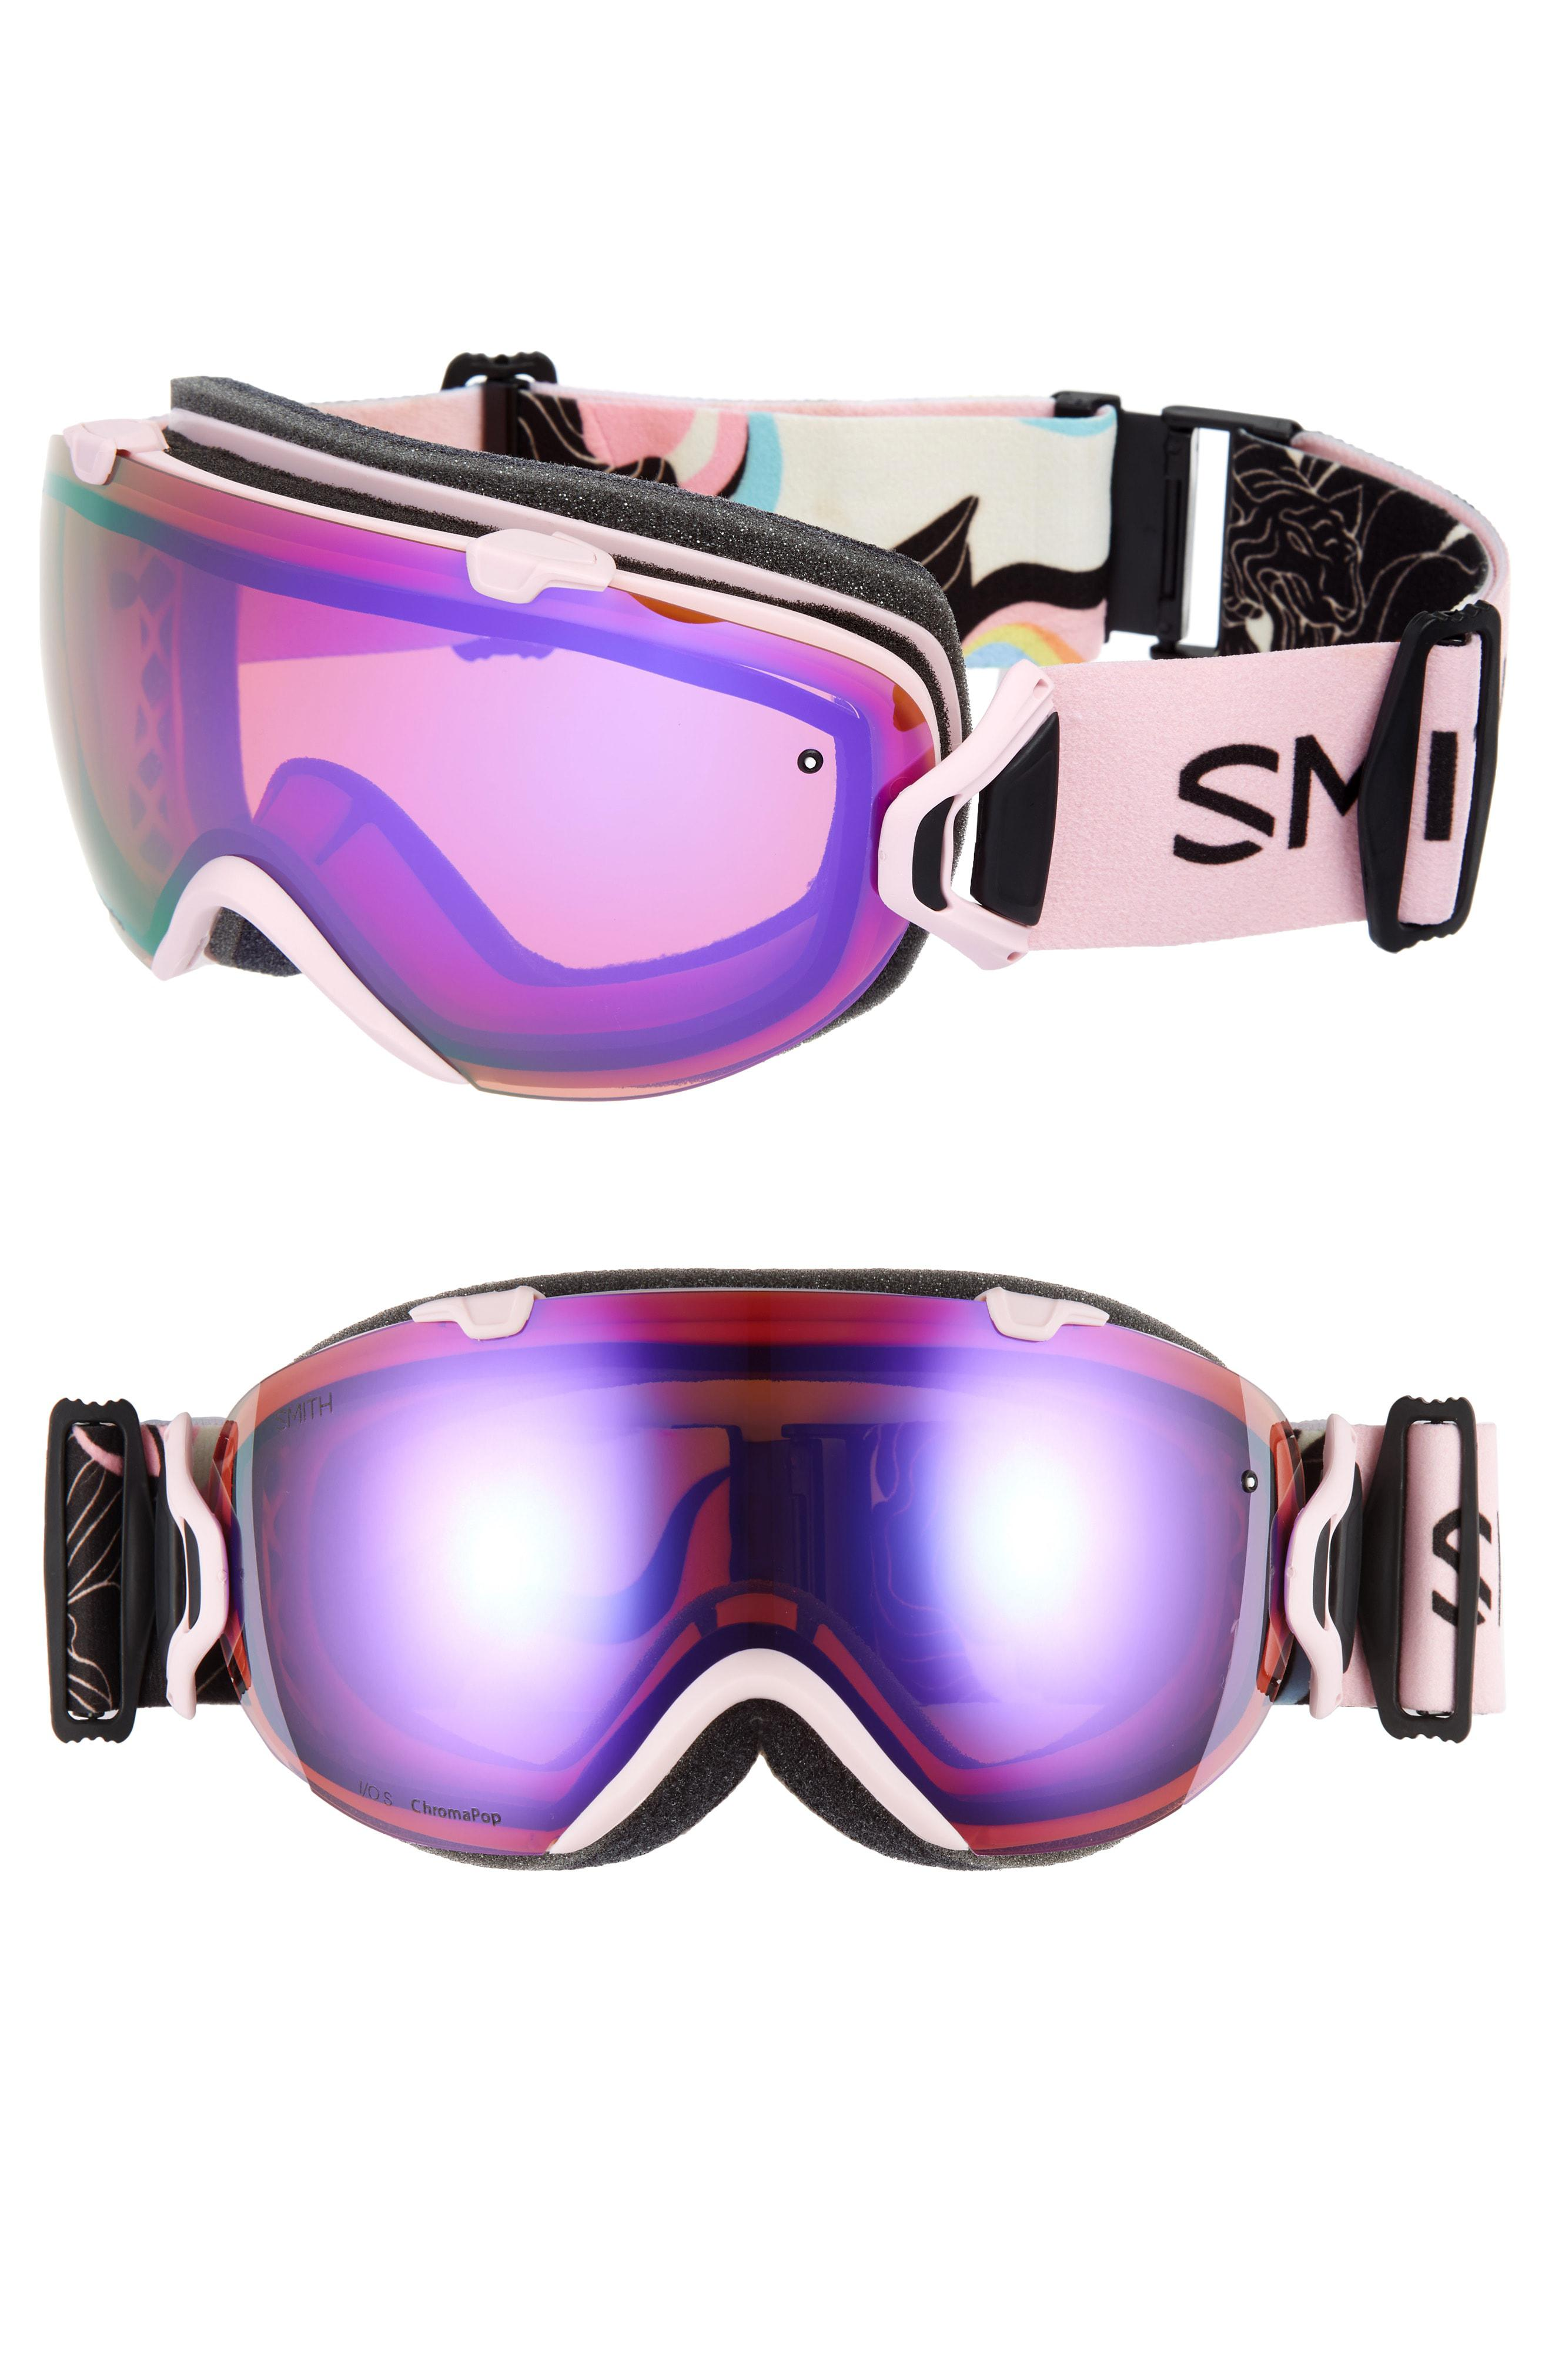 40a69c3314 Smith I os Special Fit 190mm Chromapop Snow Goggles - in Purple - Lyst